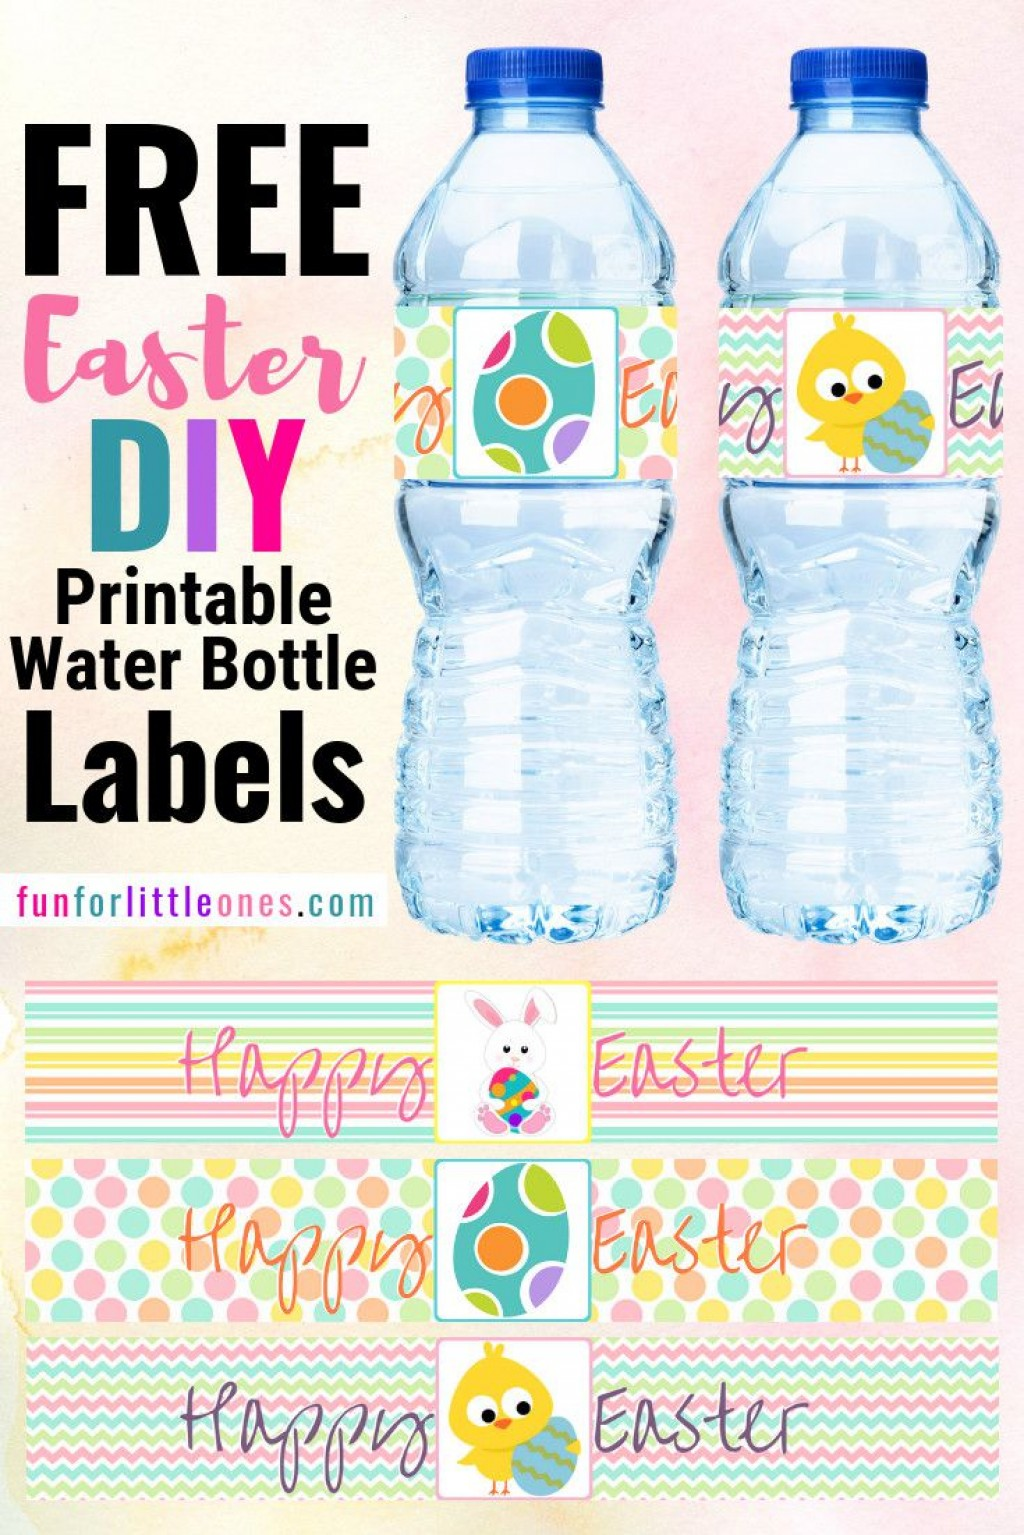 005 Awful Diy Water Bottle Label Template Free High Def Large